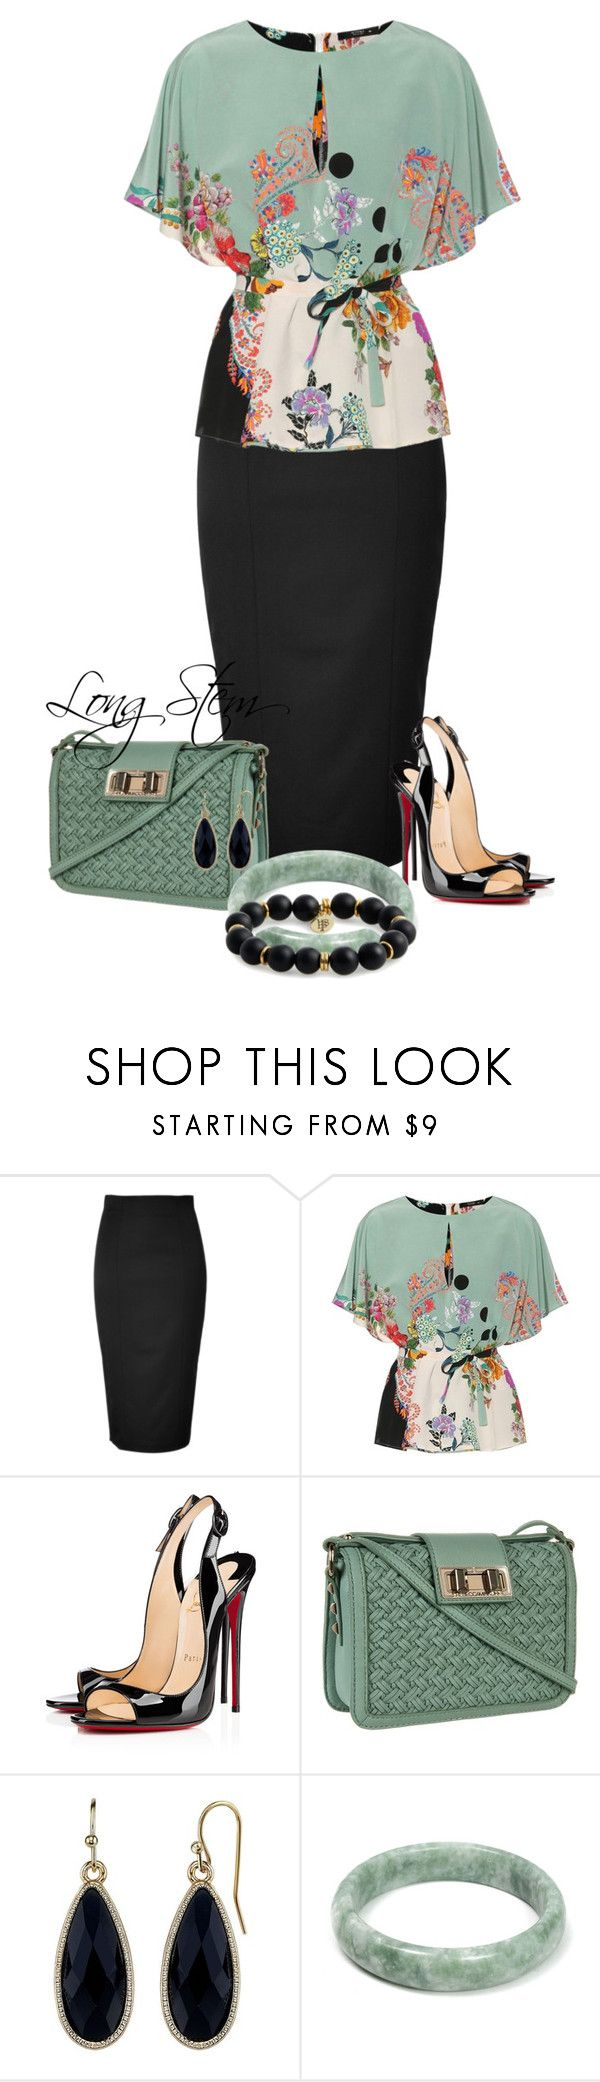 7/08/17 by longstem ❤ liked on Polyvore featuring Olympia Le-Tan, Etro, Christian Louboutin, Rebecca Minkoff, 1928 and Bourbon and Boweties